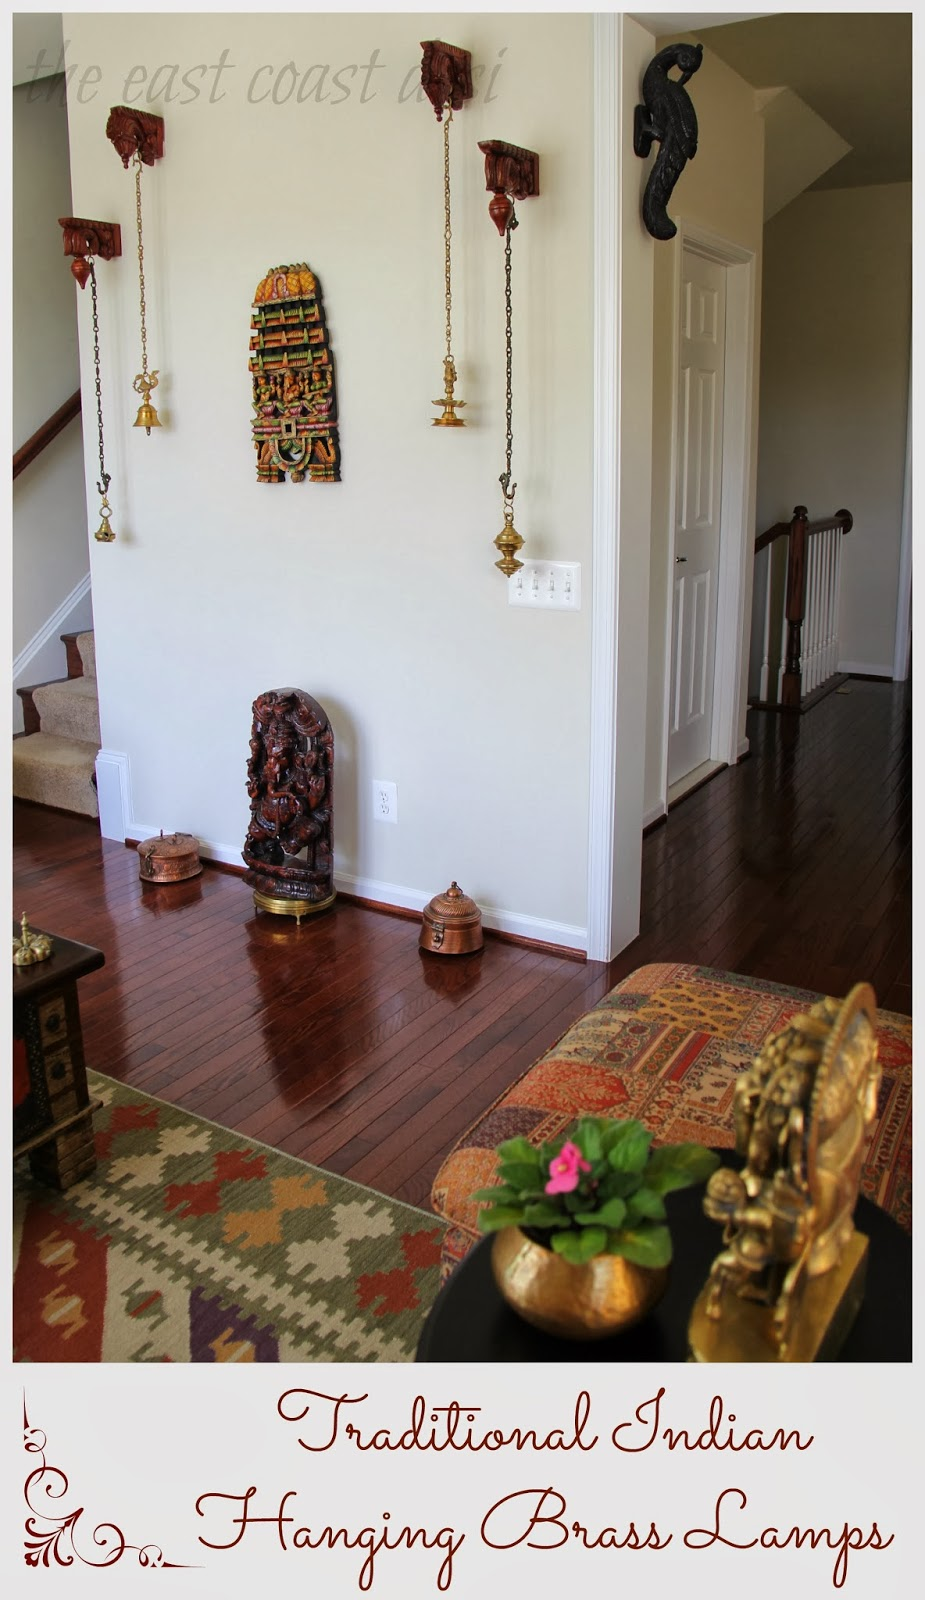 The East Coast Desi My Living Room A Reflection Of India